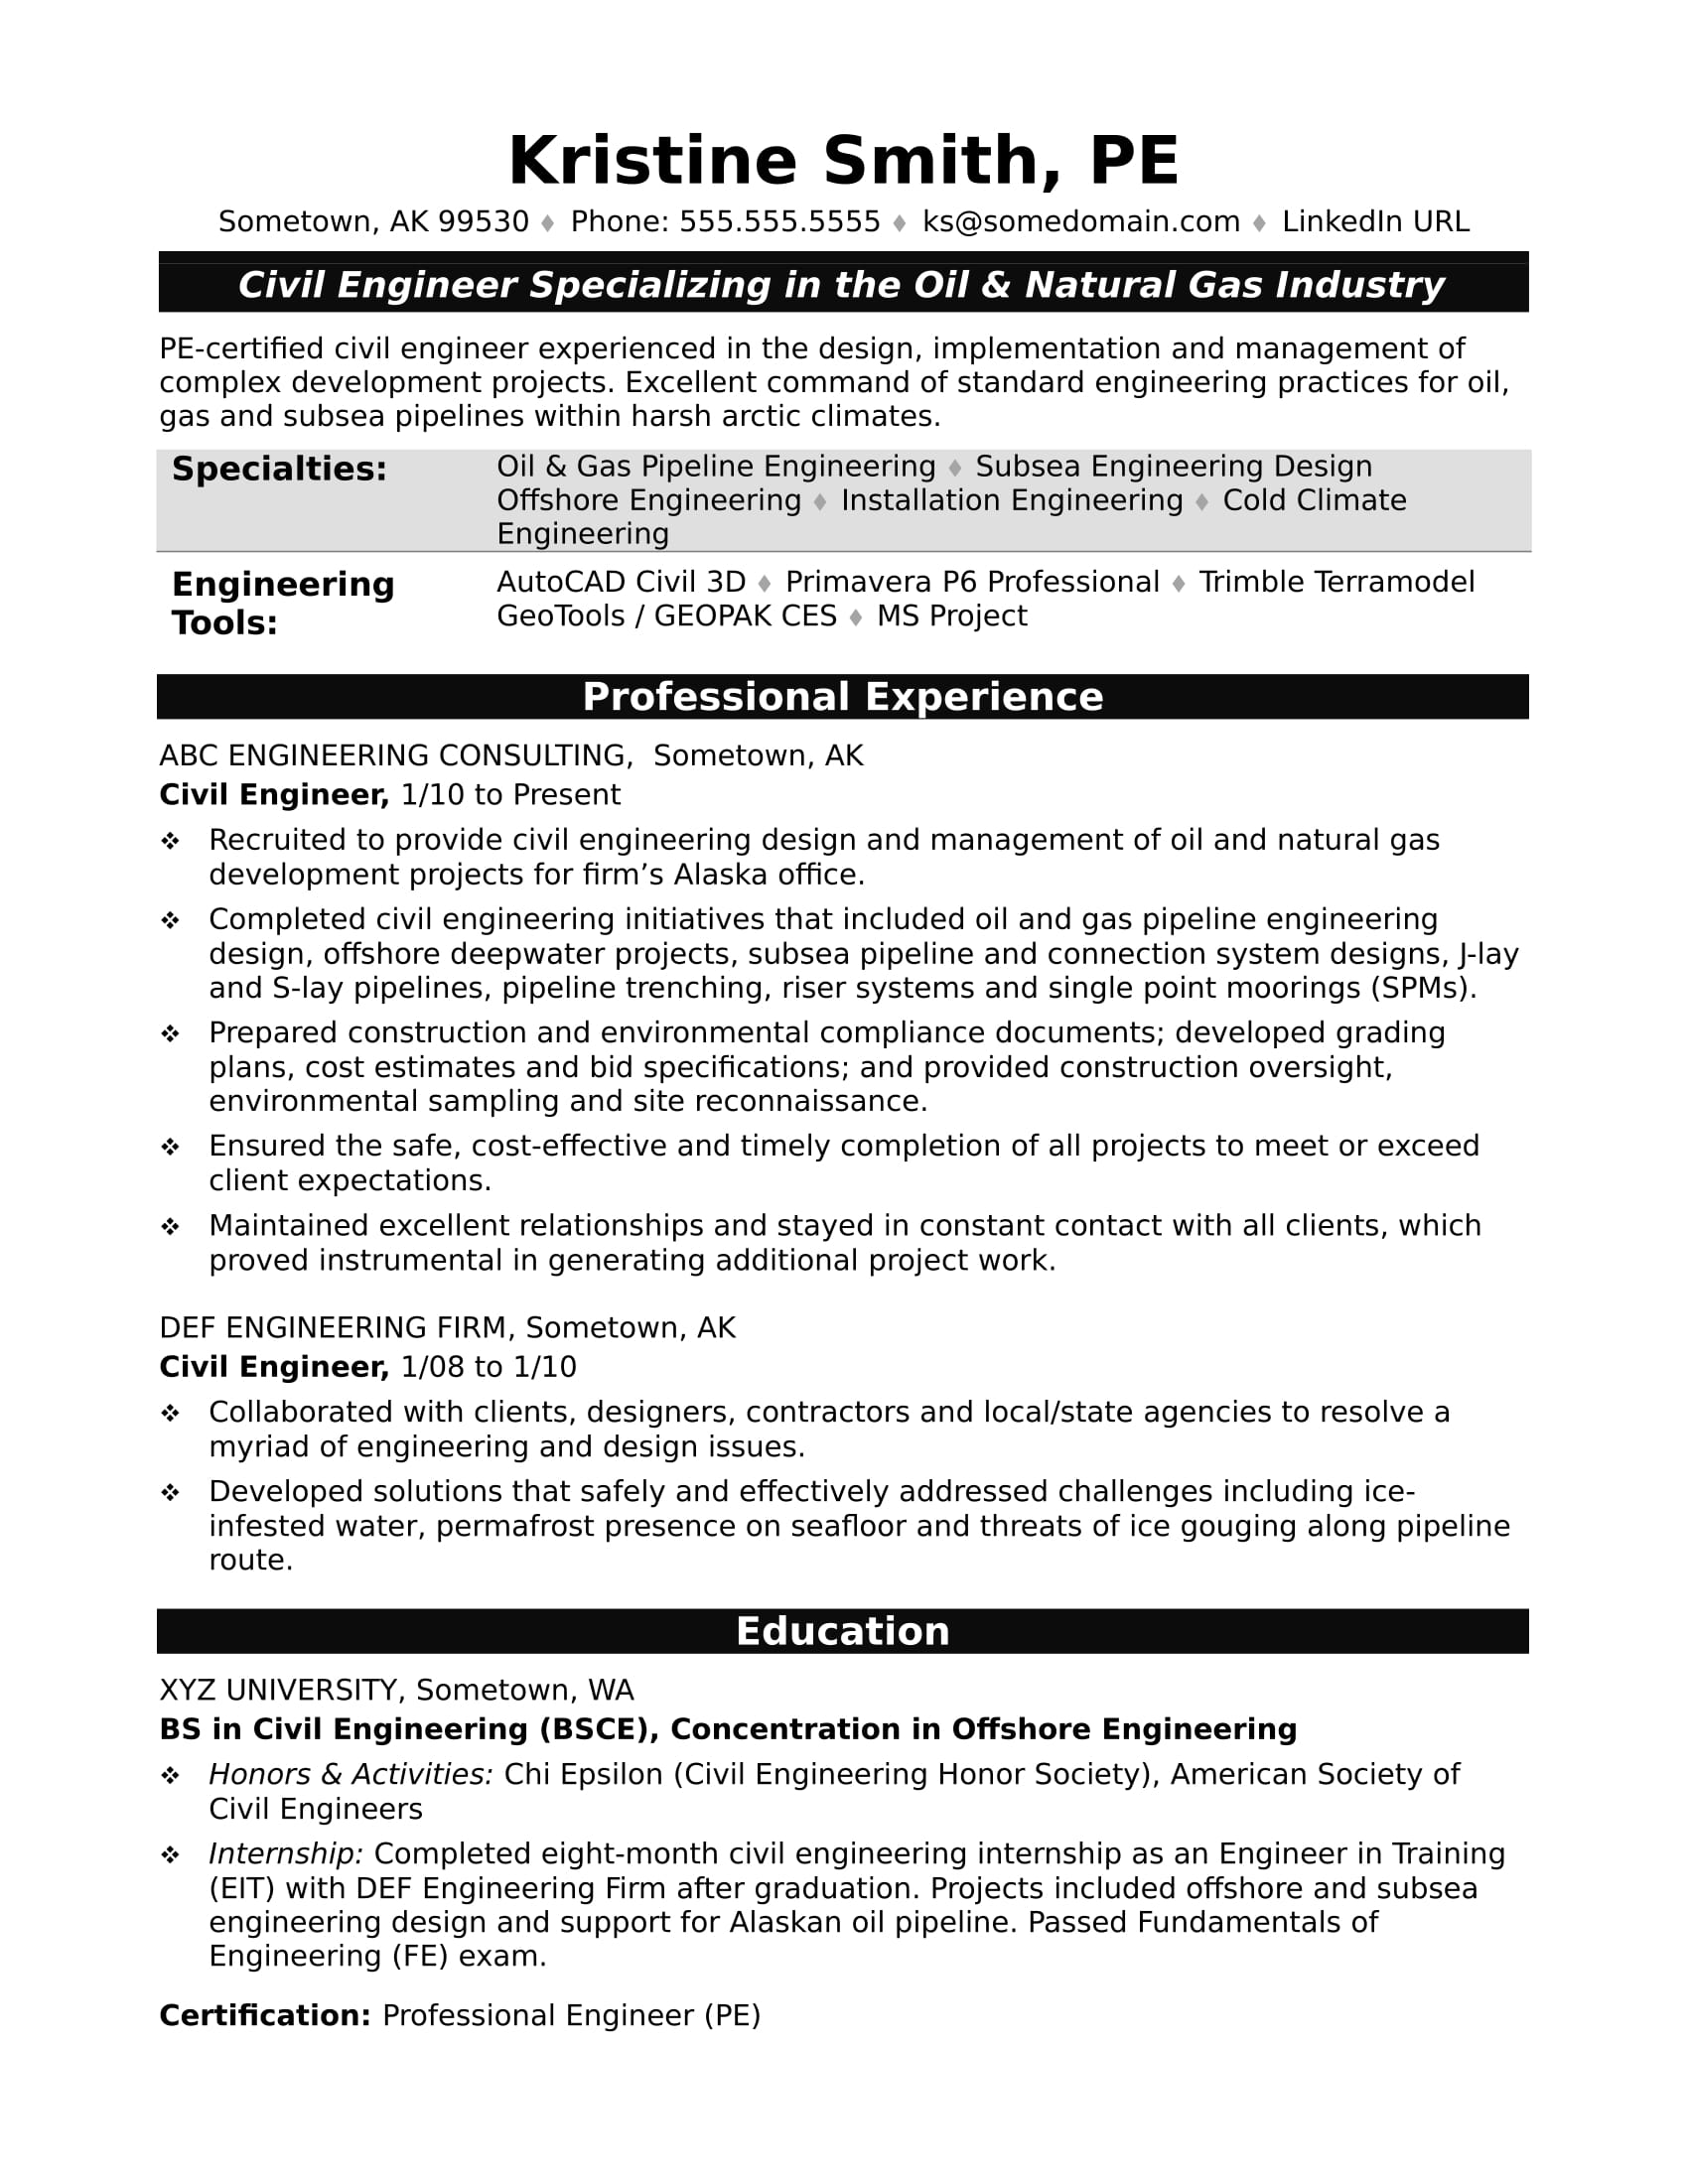 Sample Resume For A Midlevel Civil Engineer Monster Com